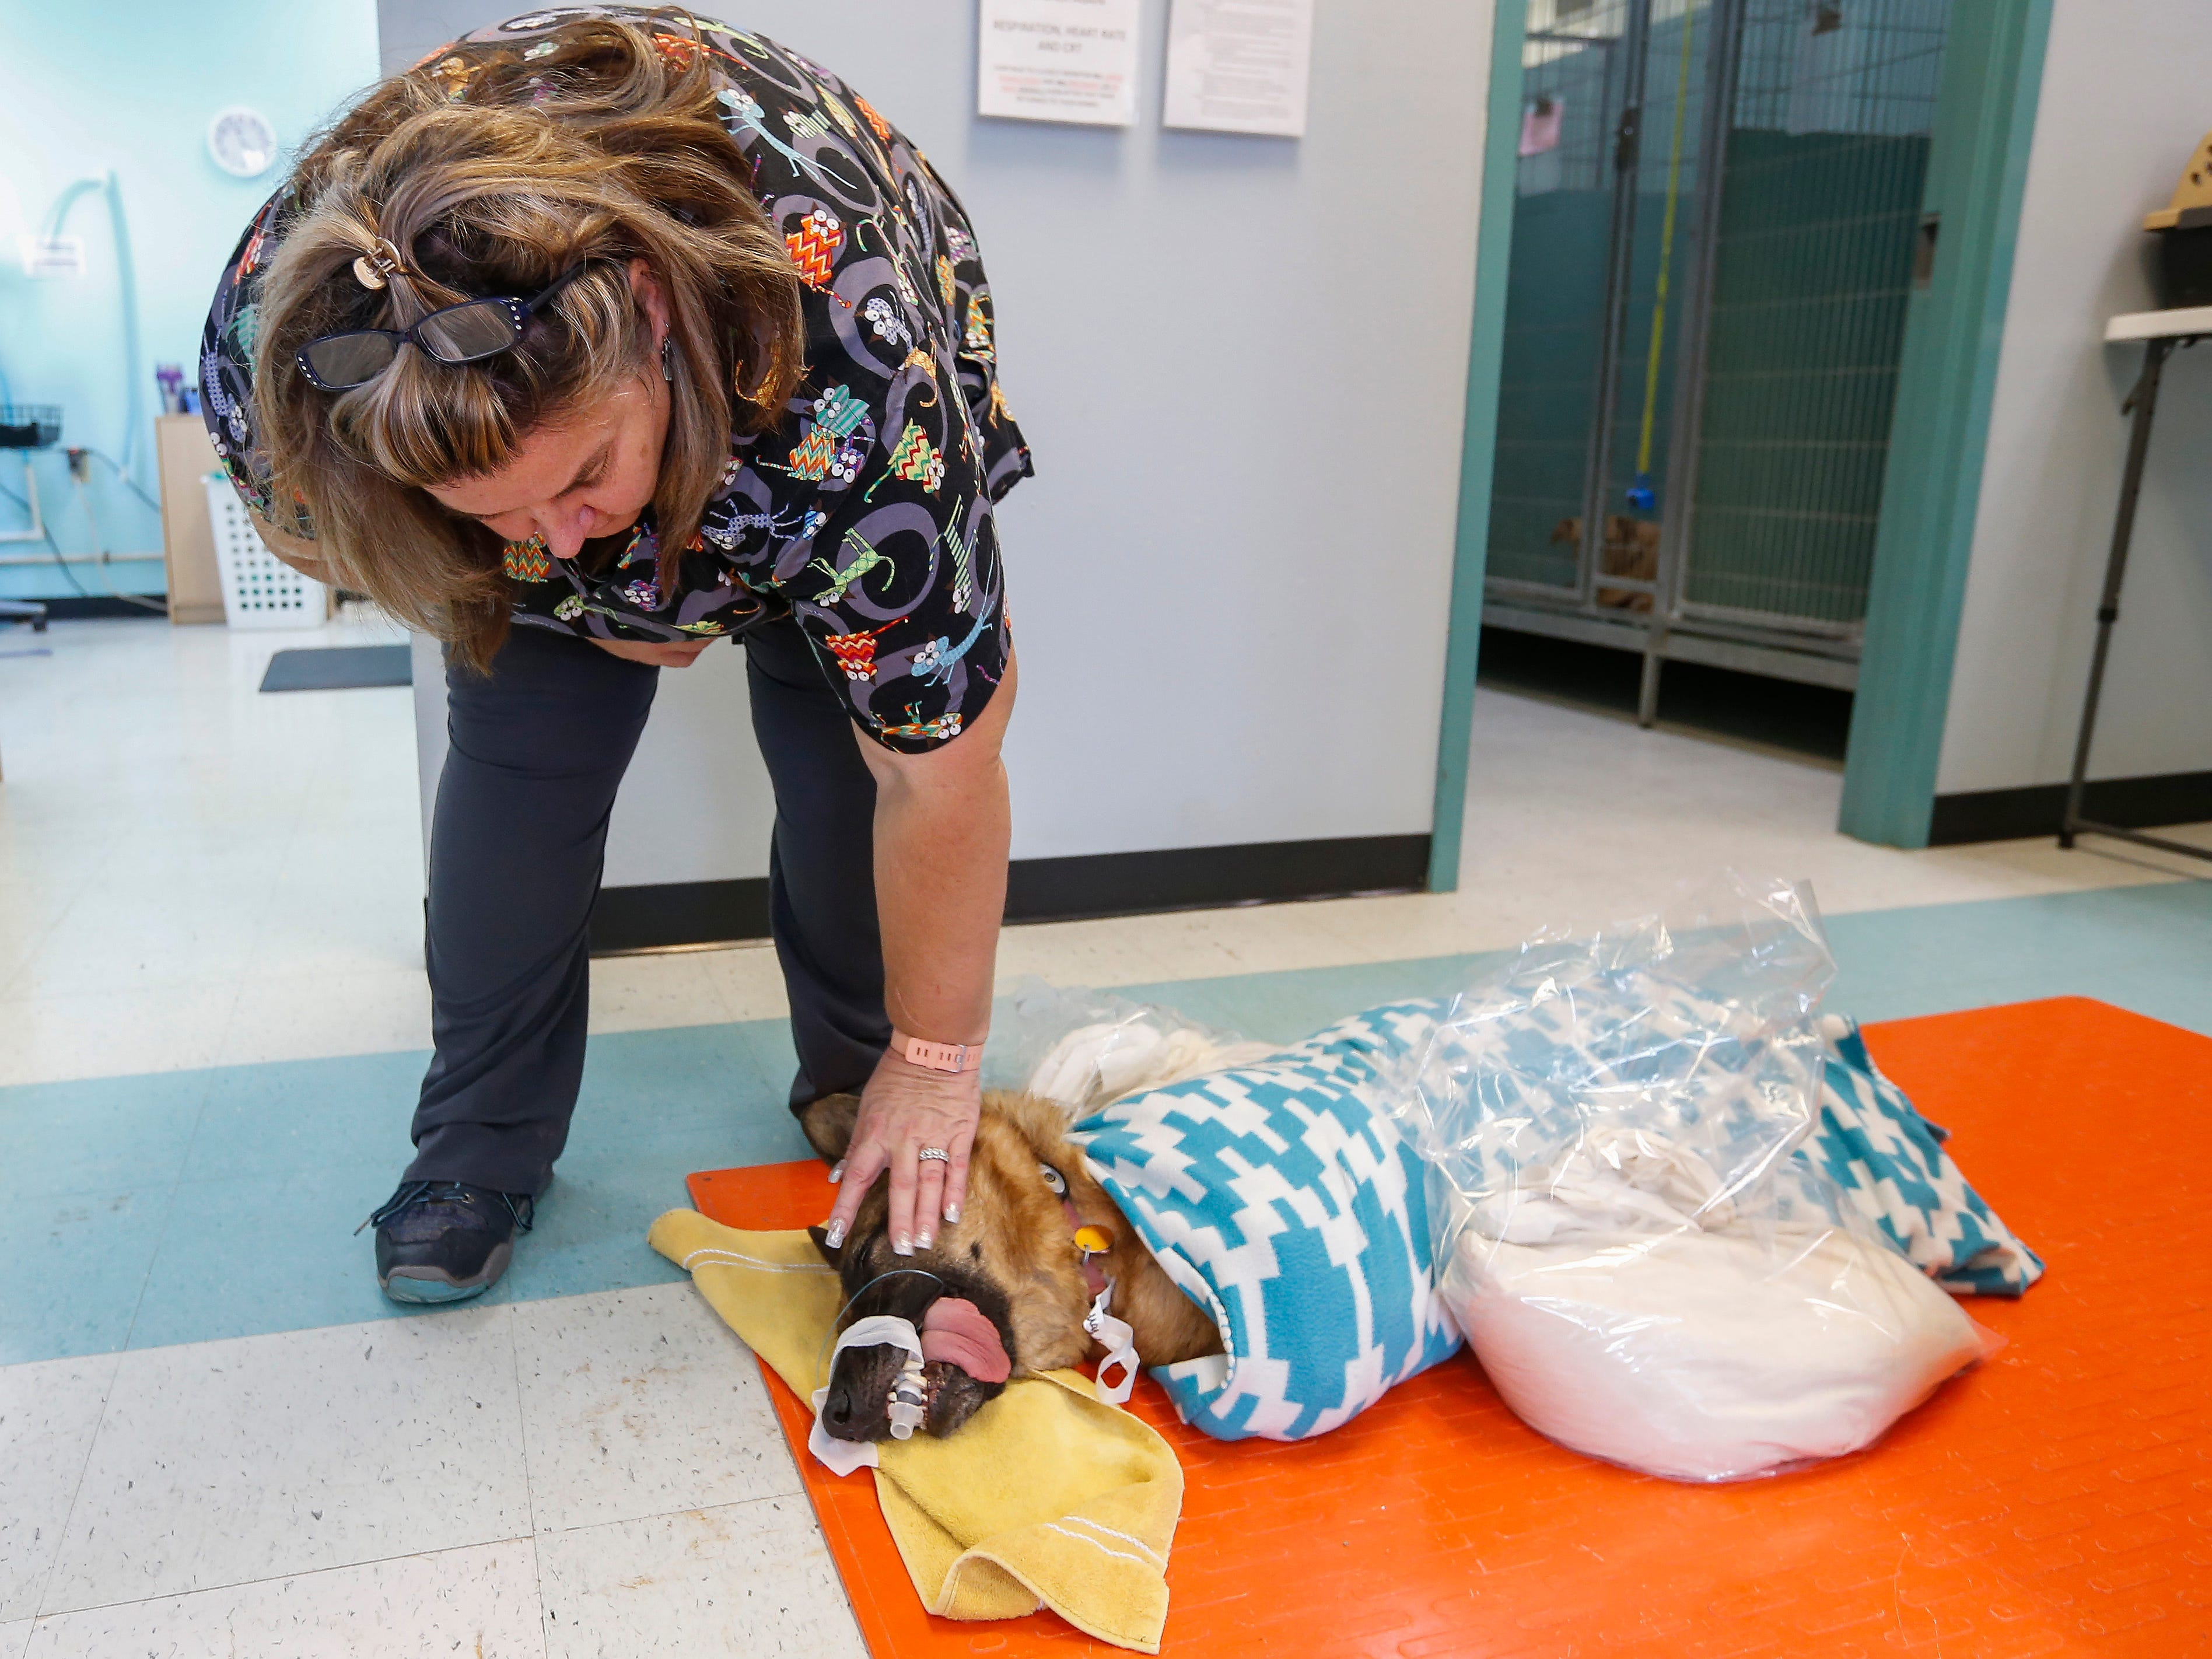 Schannon Beasley checks to see if a dog is starting to wake up after an operation at SAAF on Tuesday, Aug. 22, 2018.